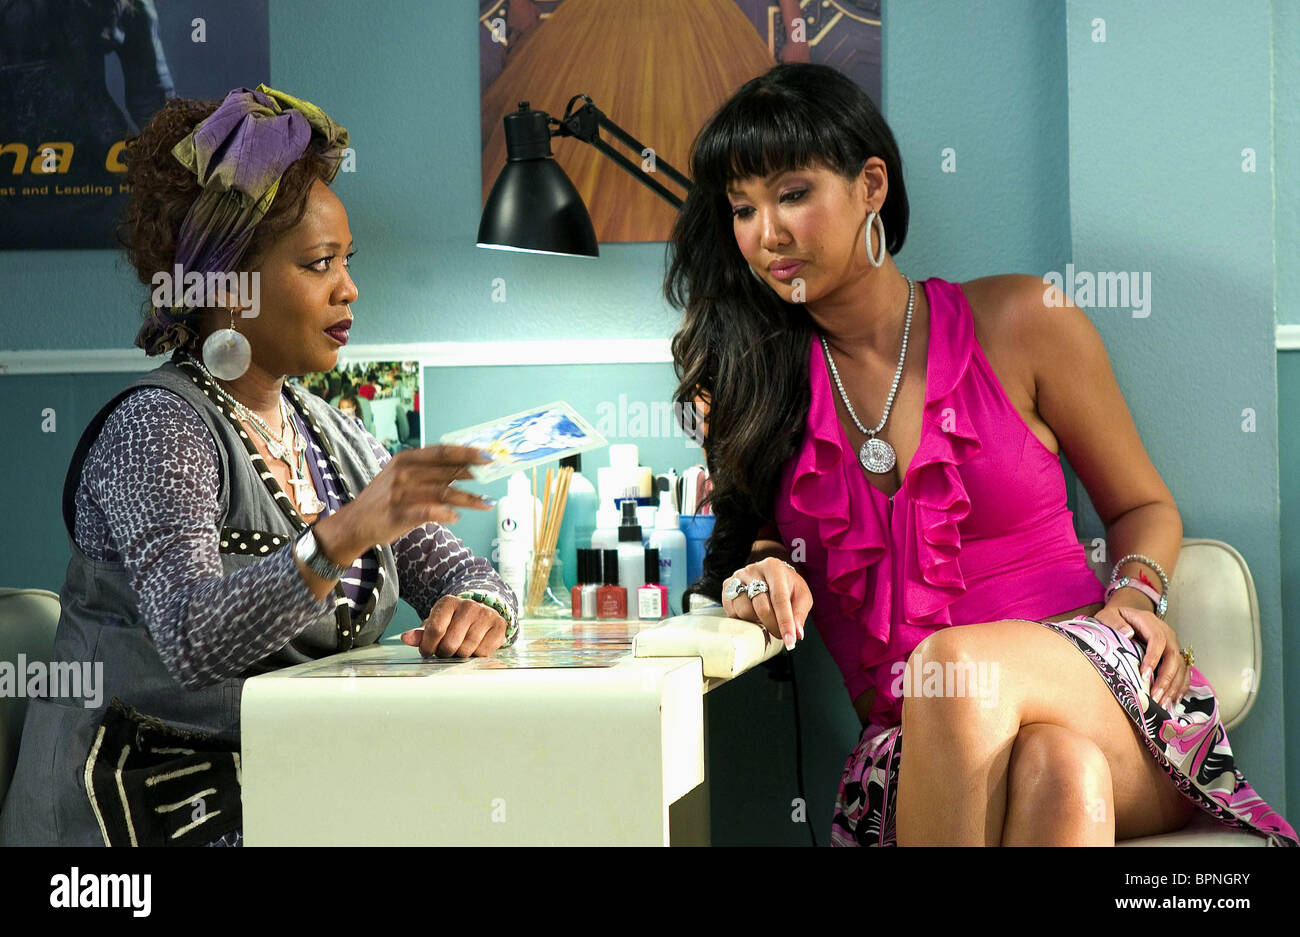 ALFRE WOODARD KIMORA LEE BEAUTY SHOP 2005